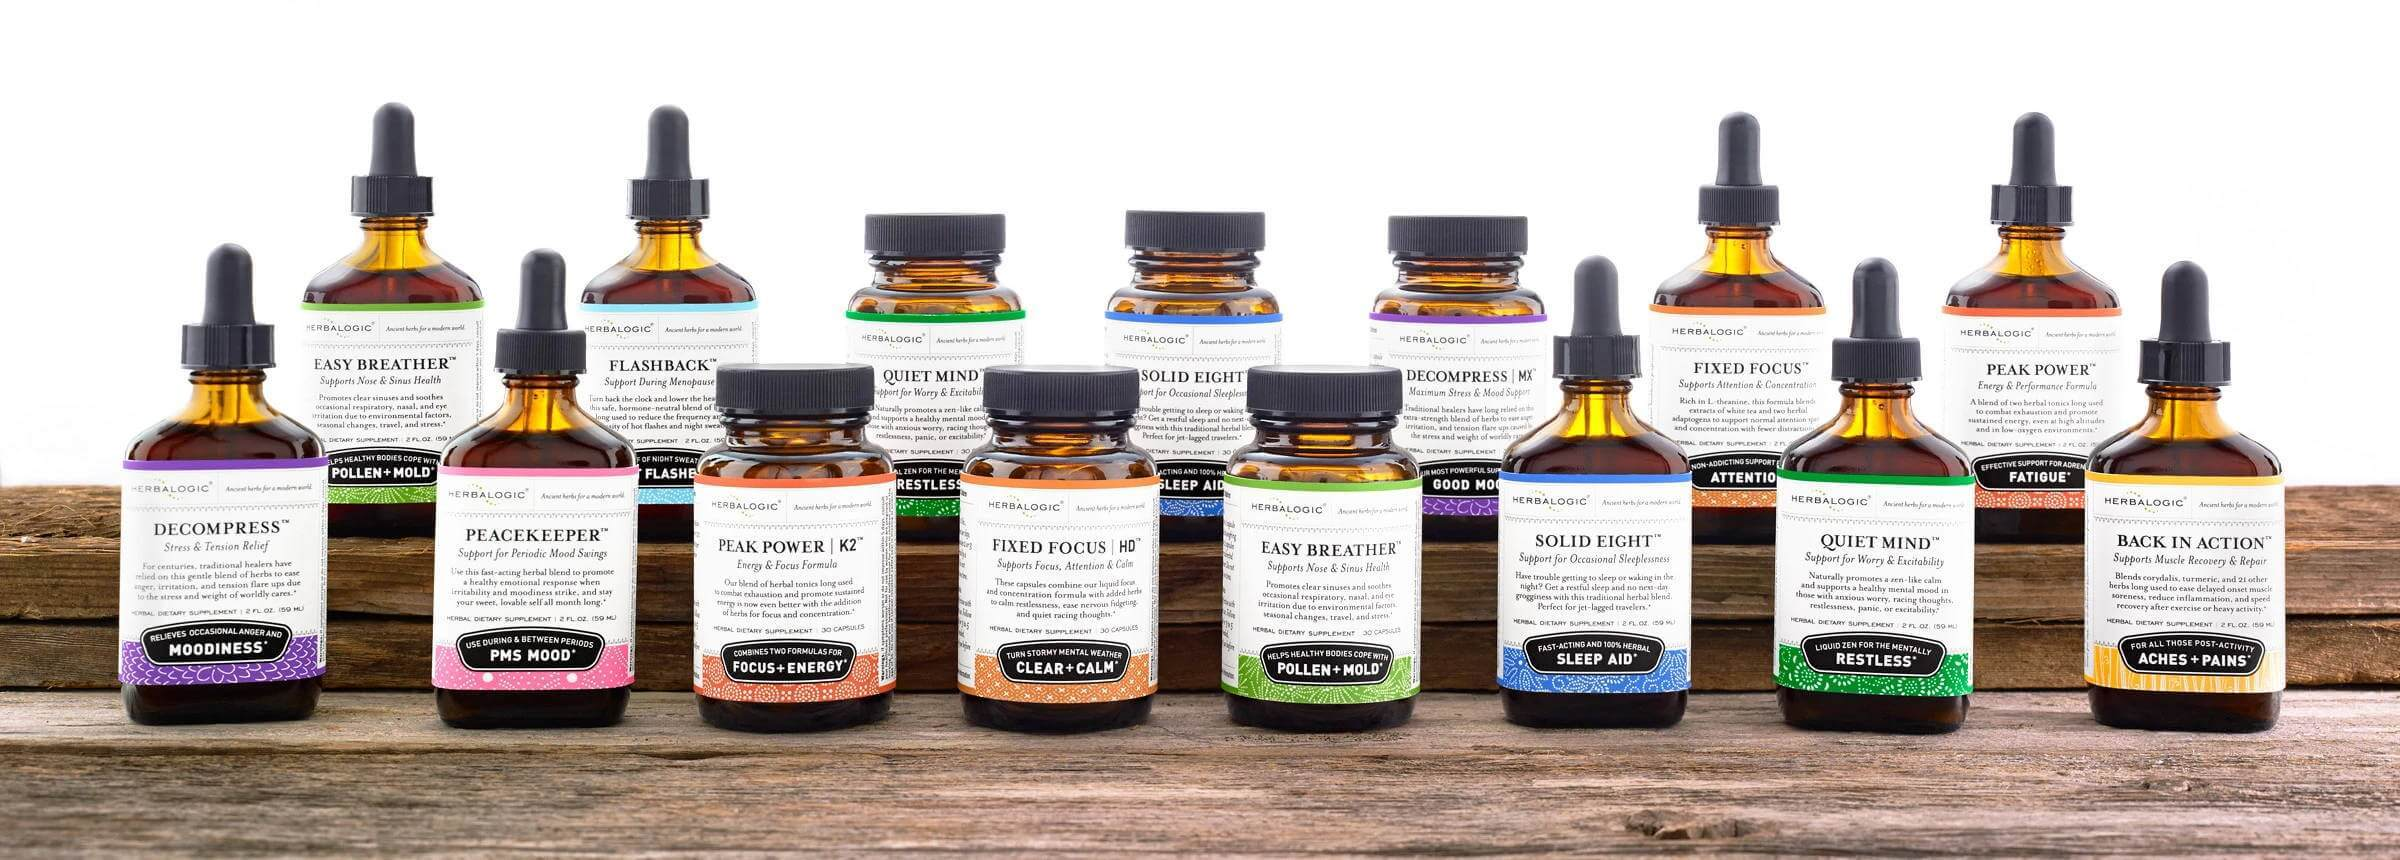 Full Collection of Herbalogic Herbal Drops and Capsules